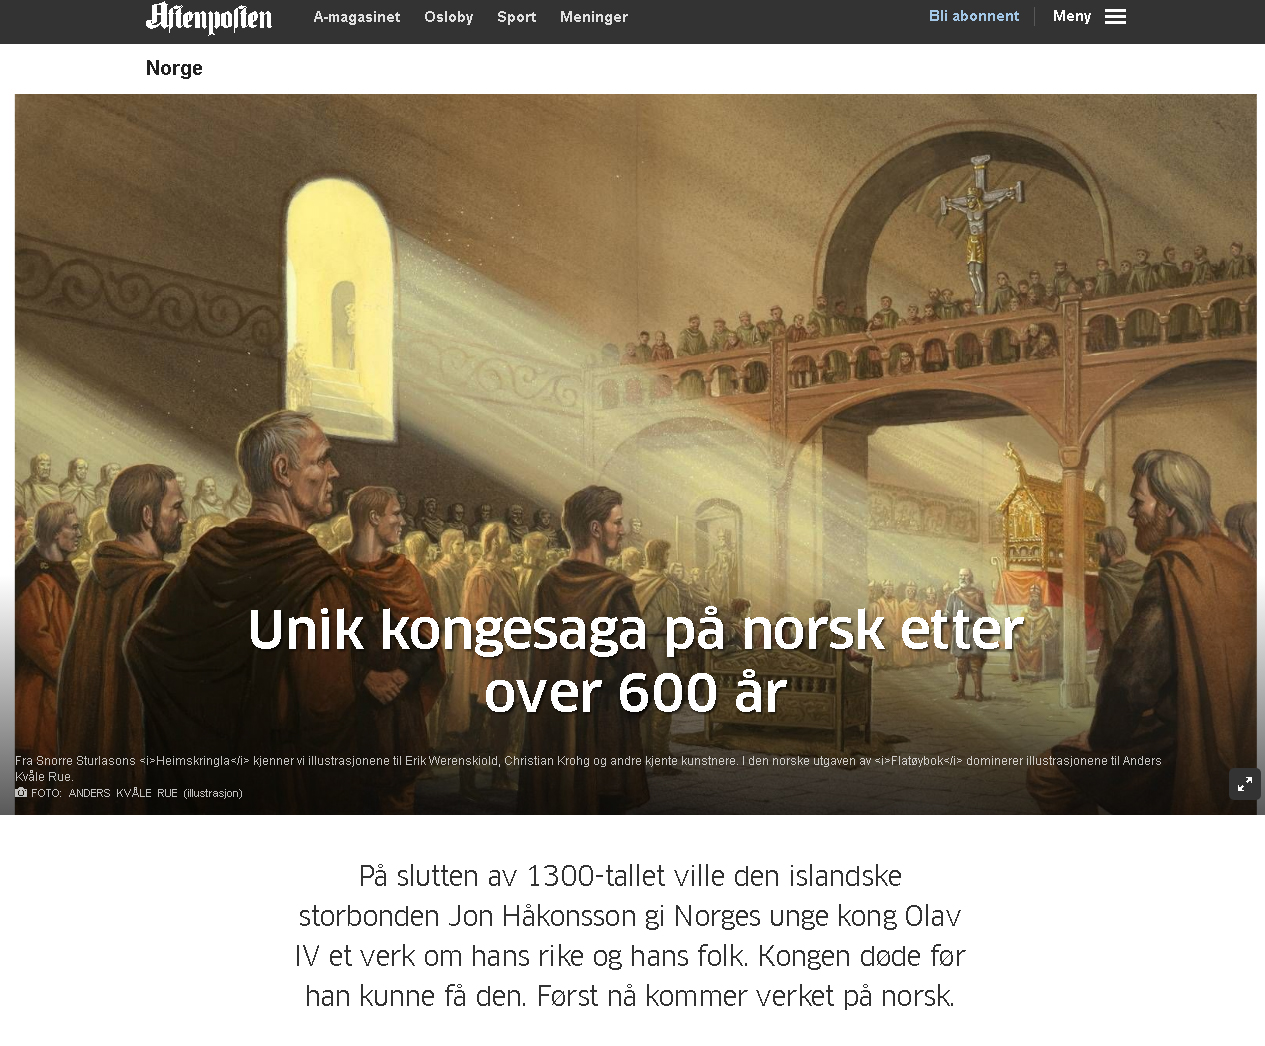 Flateyjarbok covered by Norway's largest newspaper - http://www.aftenposten.no/norge/Unik-kongesaga-pa-norsk-etter-over-600-ar-69507b.html